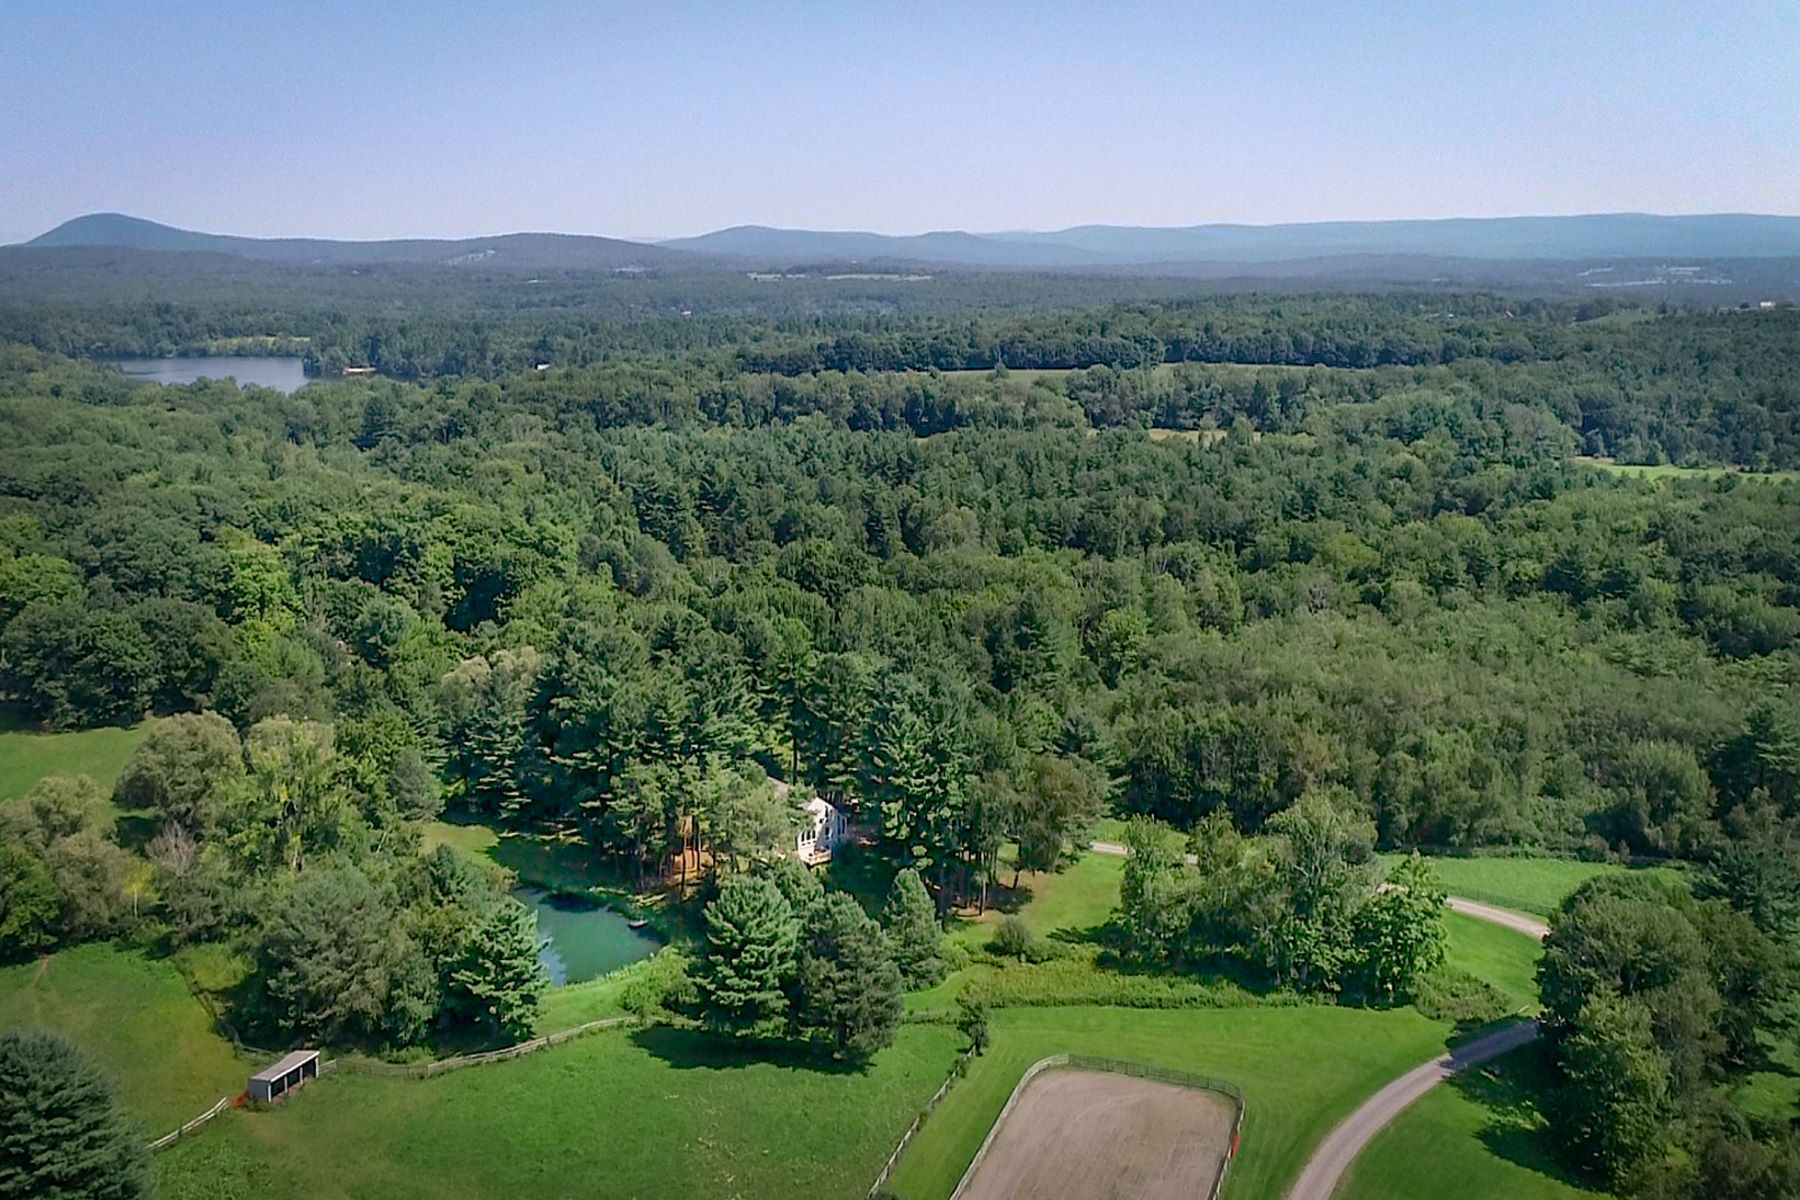 Single Family Home for Active at Berkshire Estate- The Paddocks - Views, Horses, Pastures, Pond Egremont, Massachusetts 01230 United States